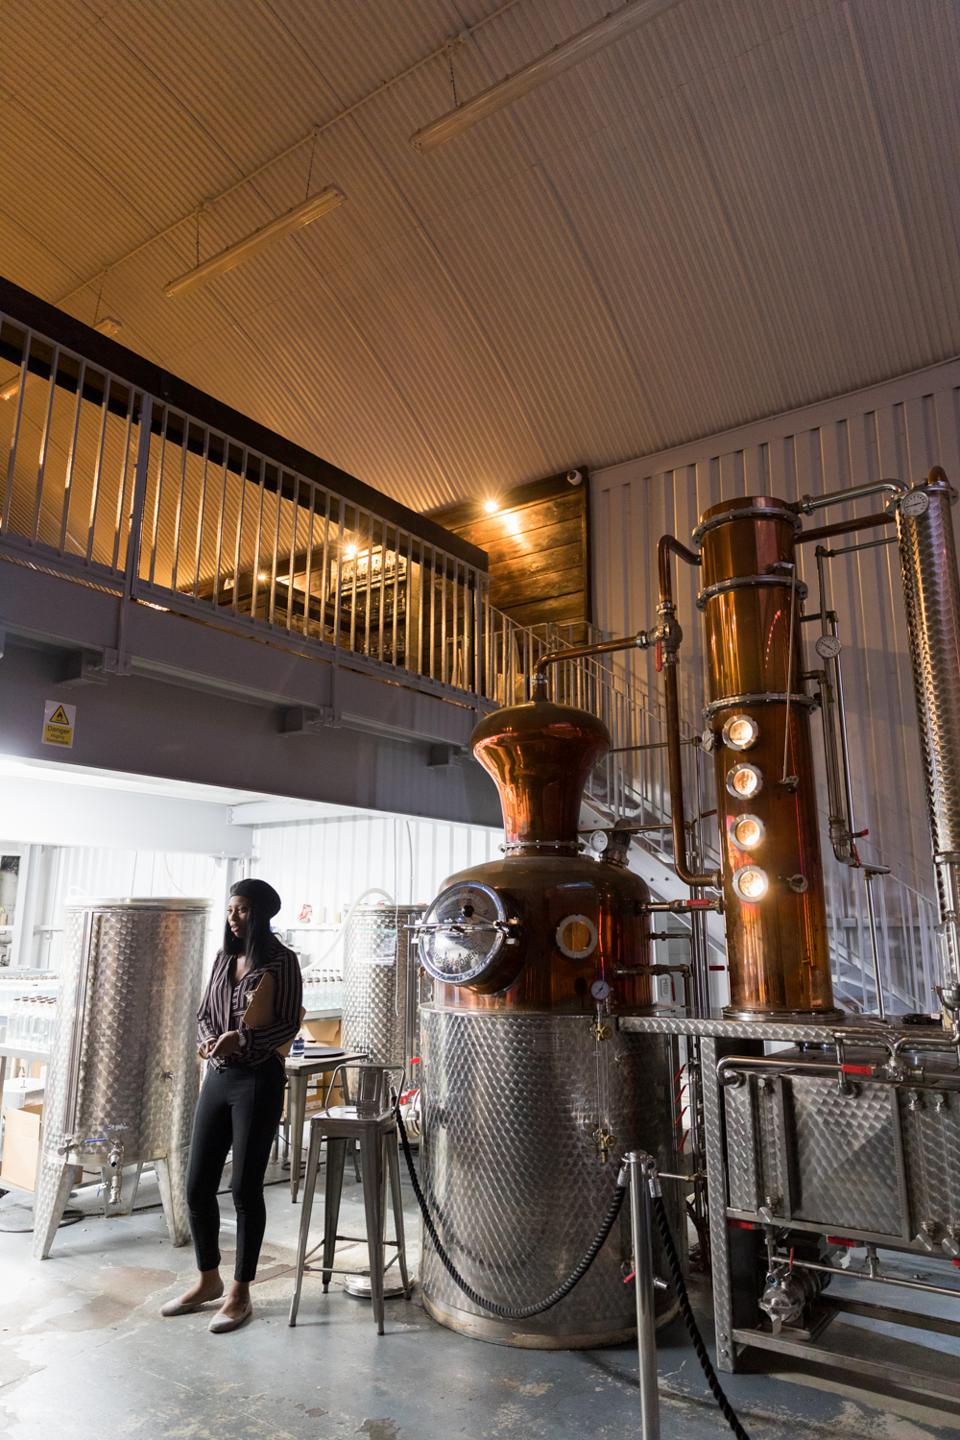 Each Gin Experience features a tour of their working production area